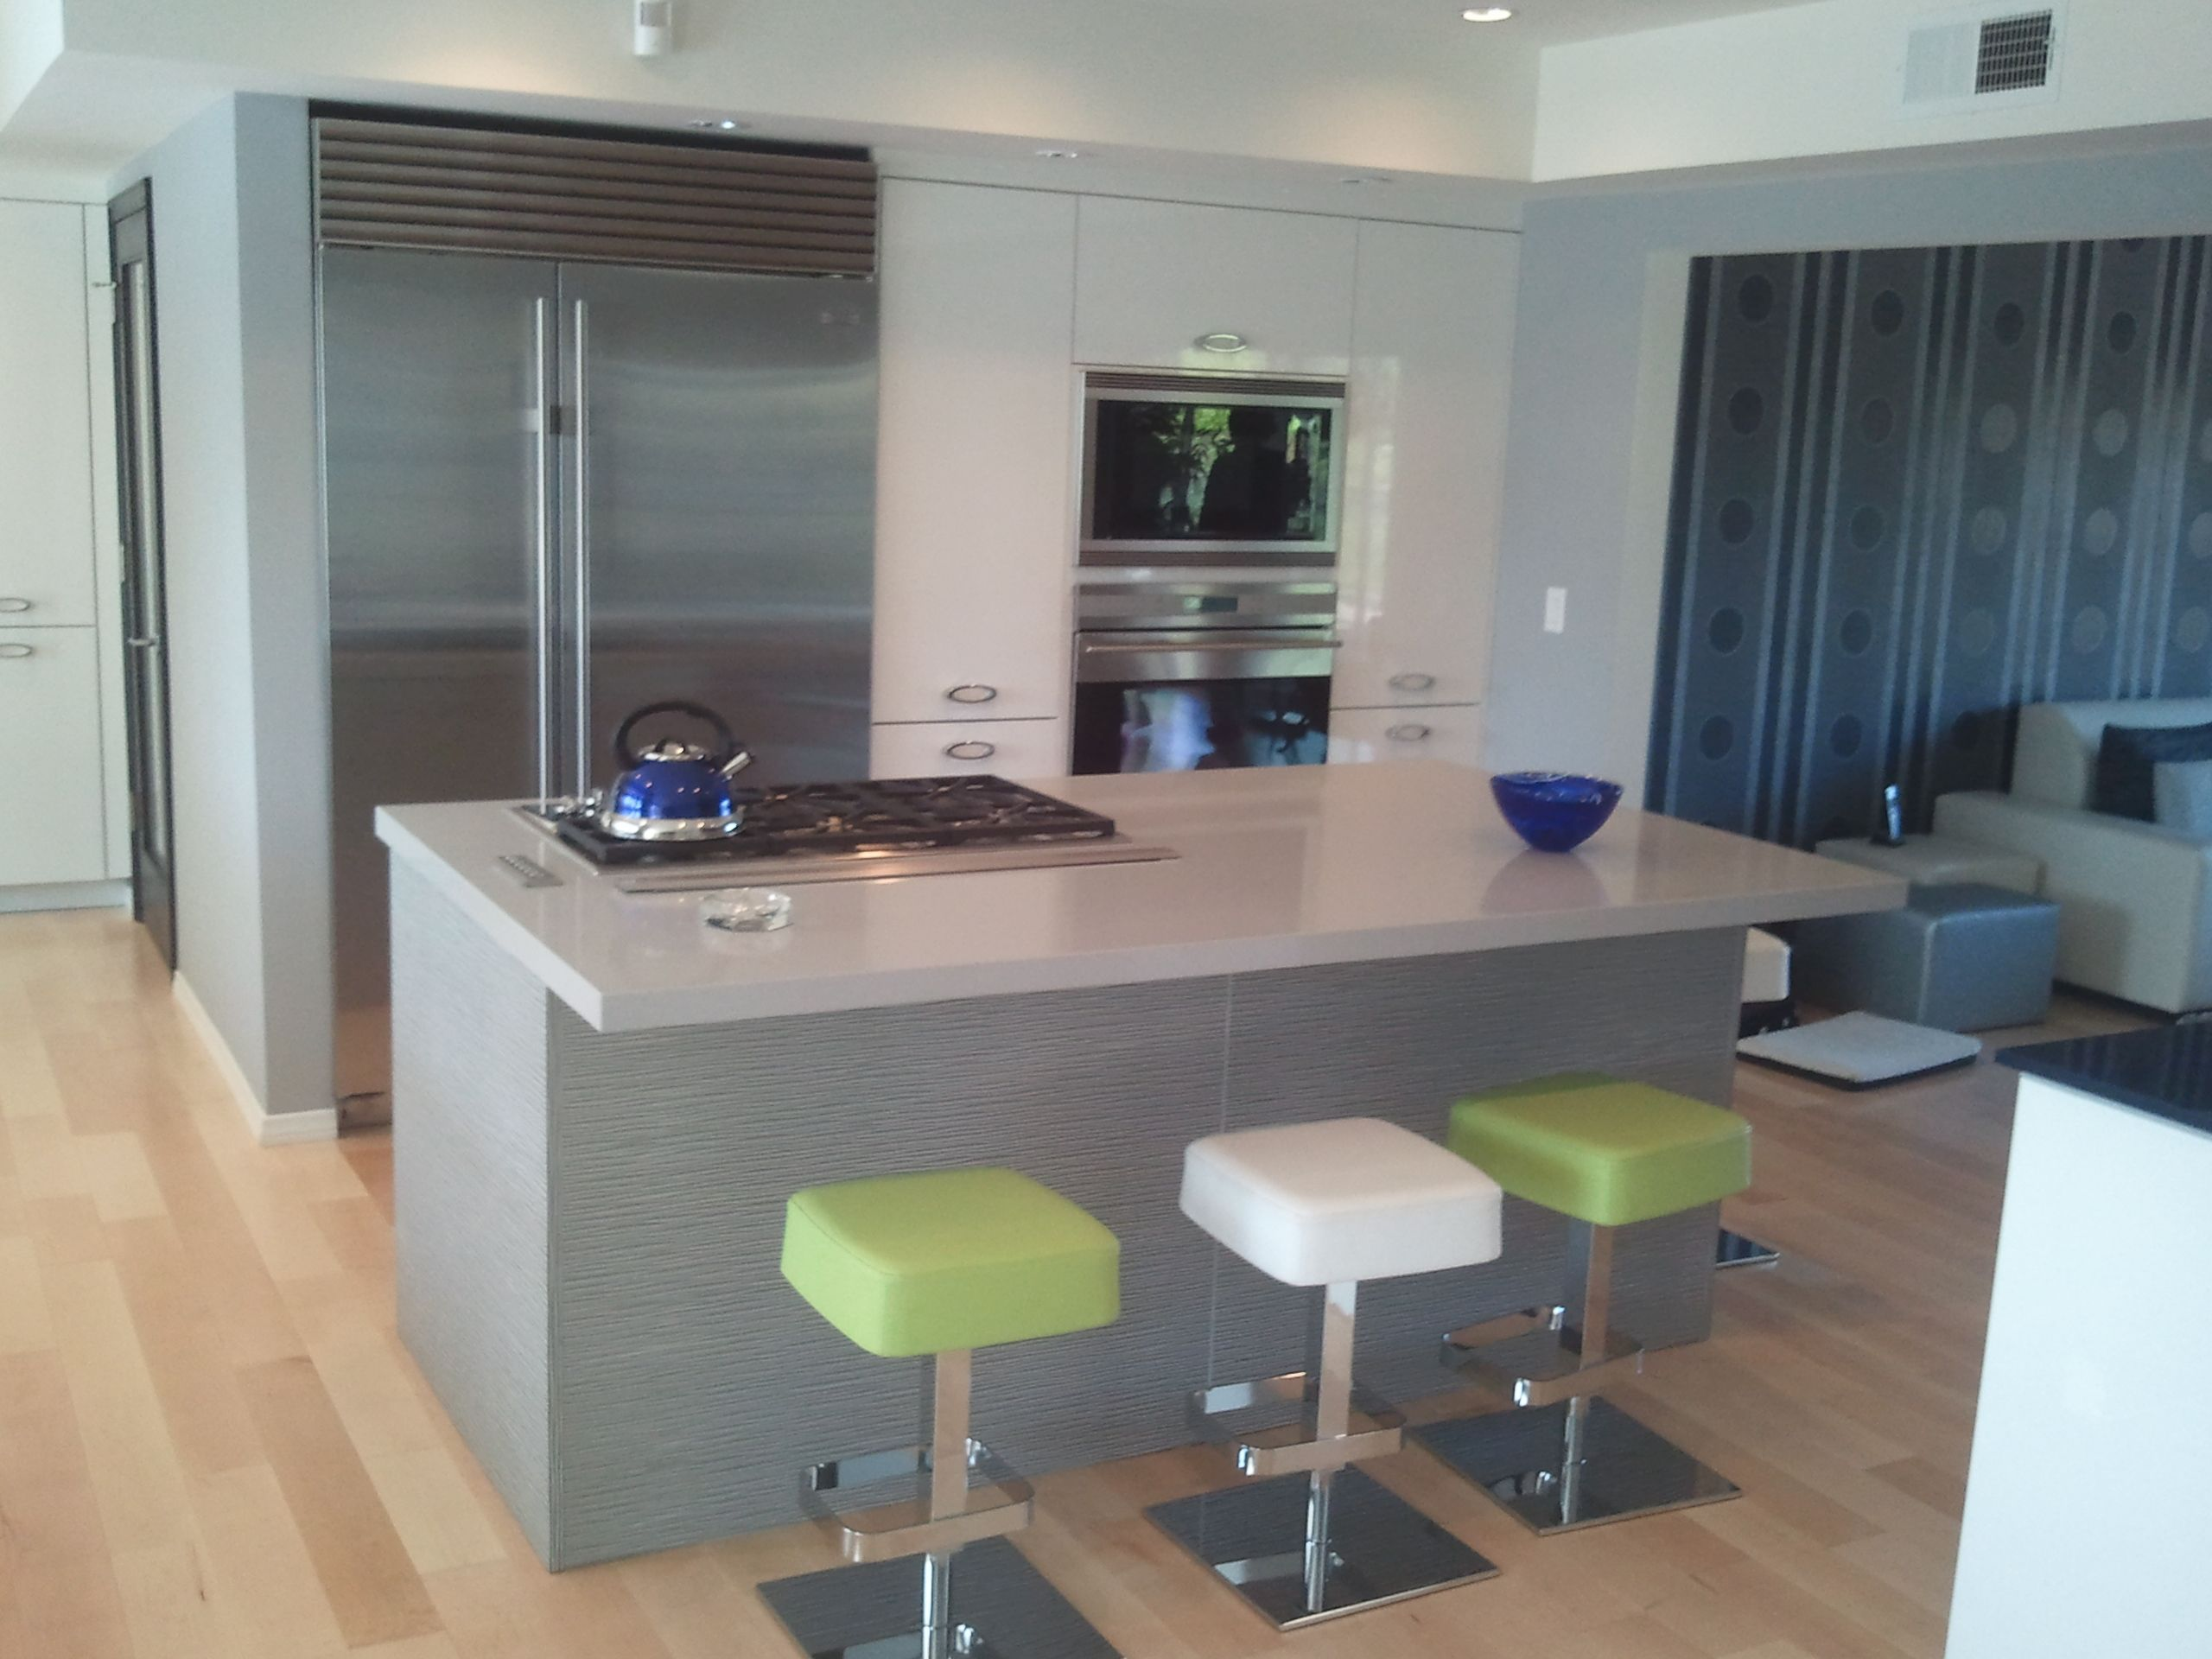 Bauformat modern kitchen in Los Angeles, CA | completed kitchens ...